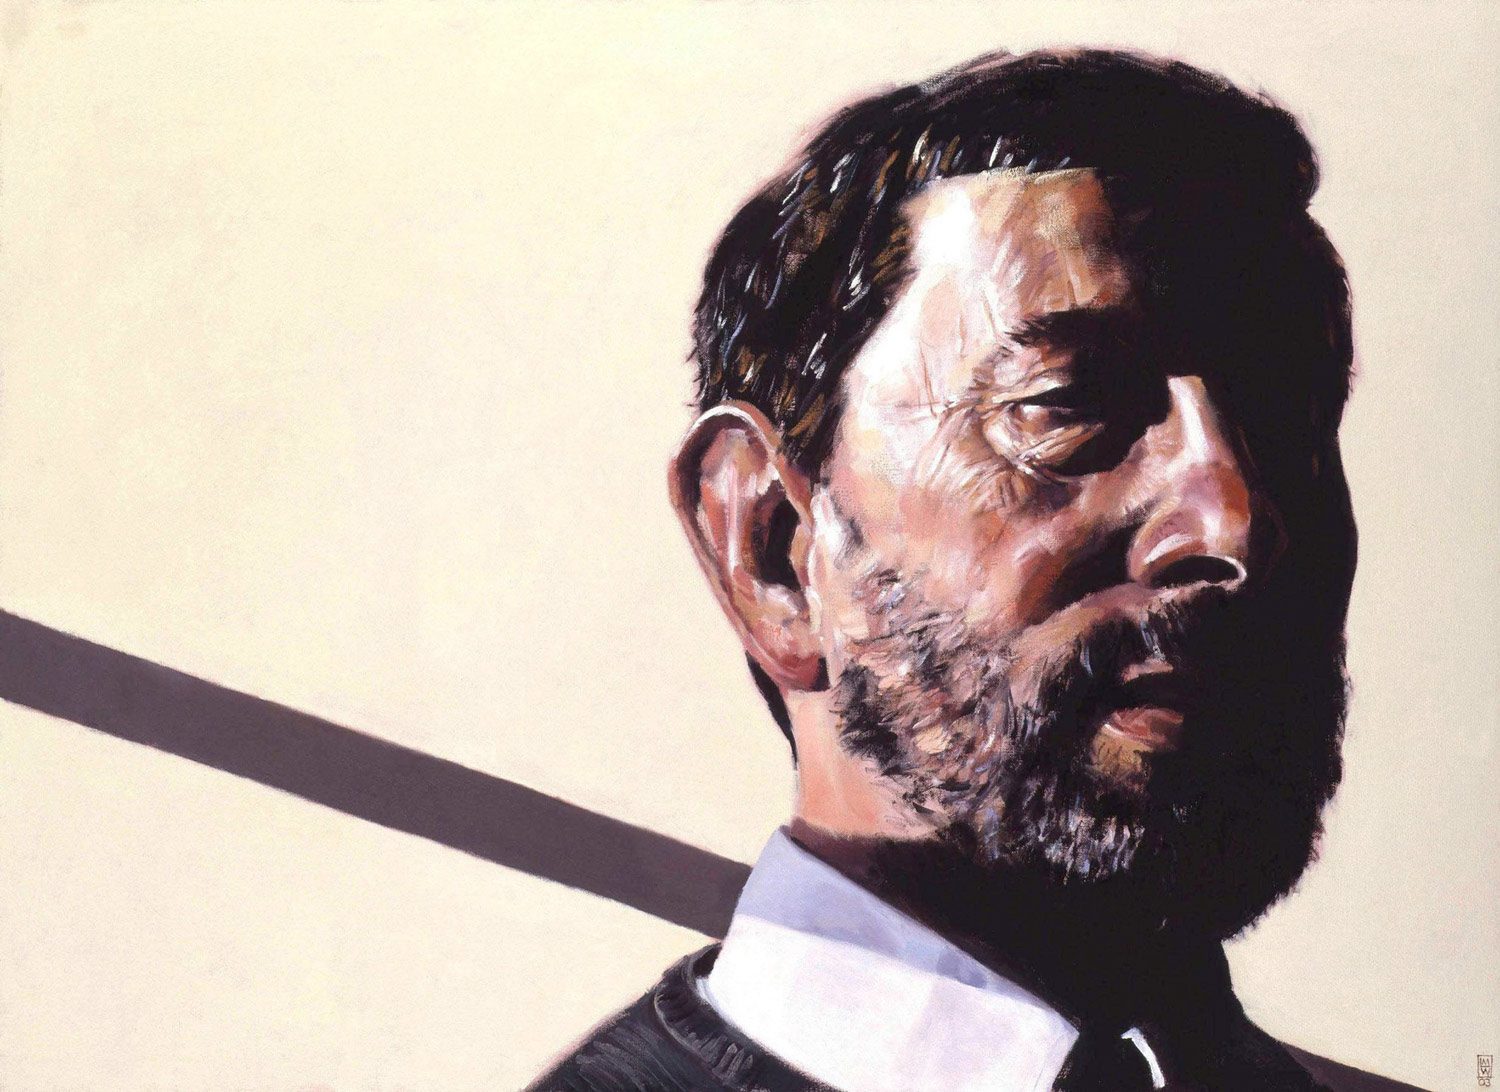 The Rt. Hon. David Blunkett as Home Secretary    (Collection of the Palace of Westminster) . 3 x 4 foot. Oil on canvas.